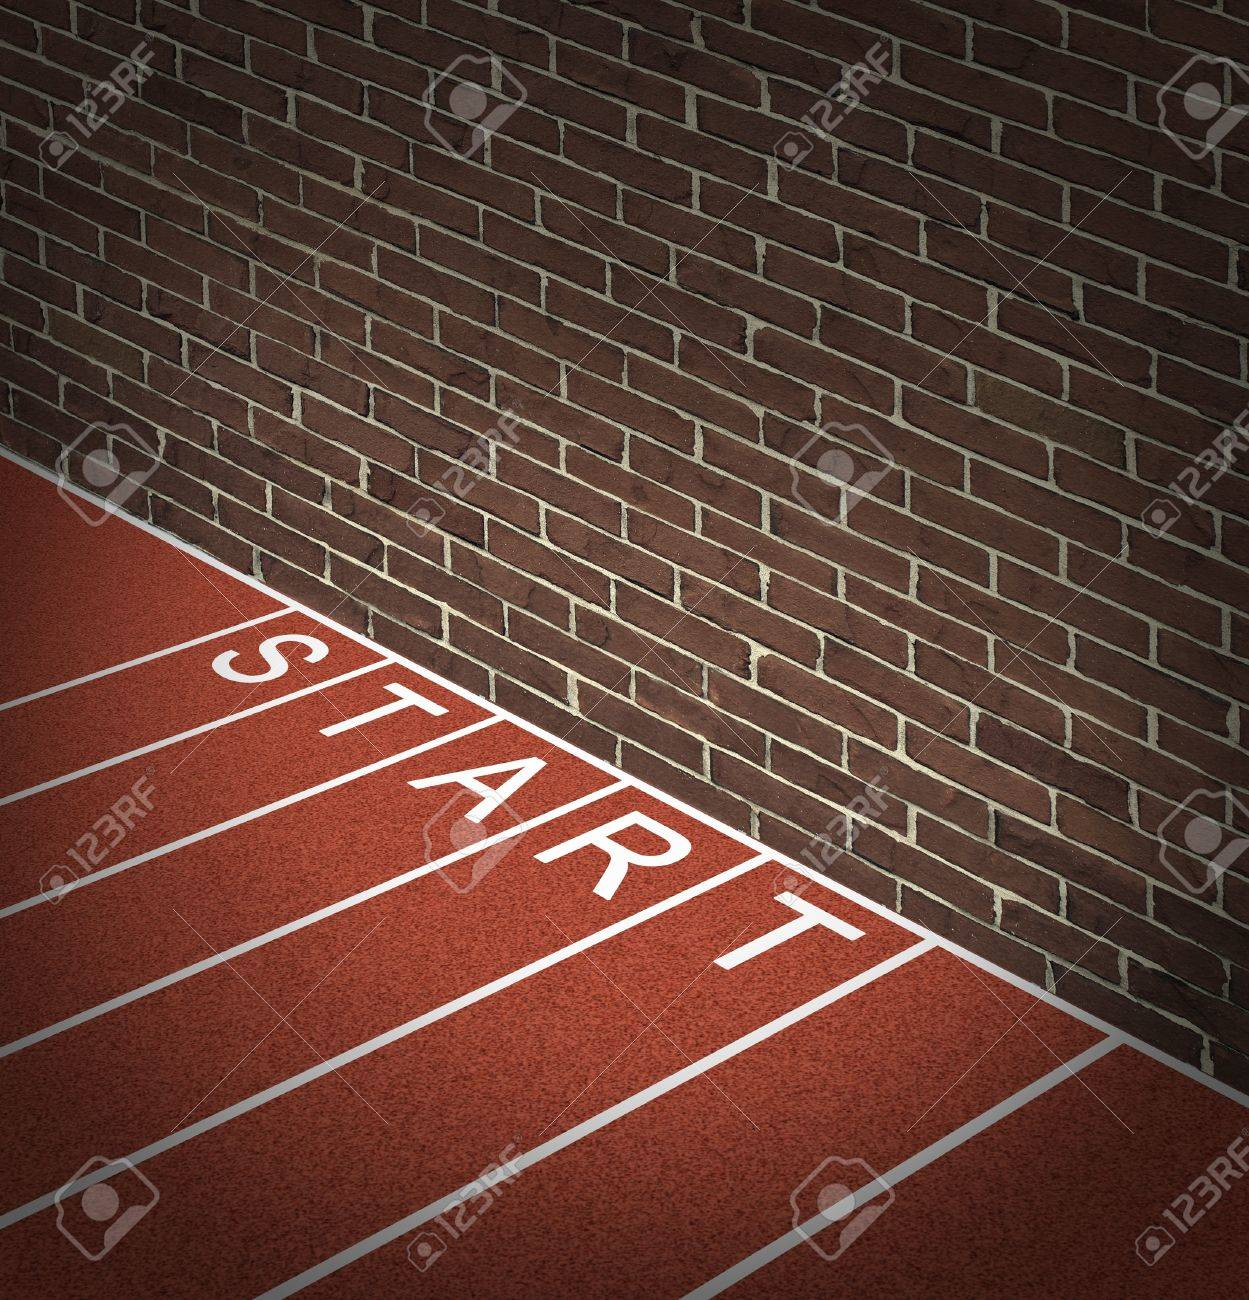 New business problems as unaccessible closed opportunities and no access to financial oppotunities as a track and field race track start position with a brick wall blocking the way forward Stock Photo - 17335544